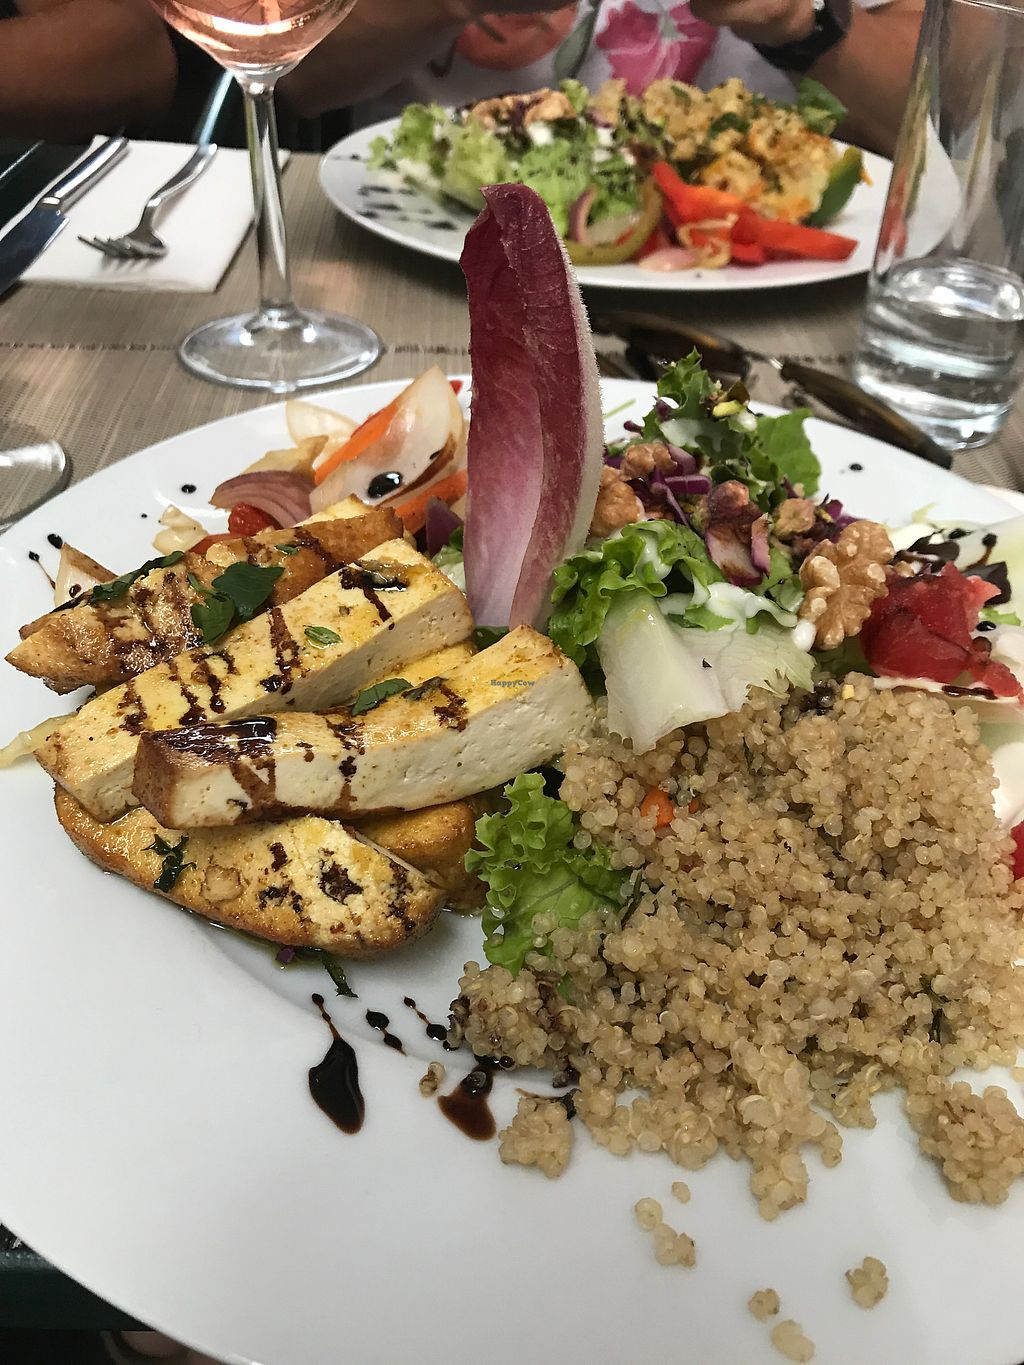 """Photo of Organi Chiado  by <a href=""""/members/profile/Marlous"""">Marlous</a> <br/>tofu meal of the day <br/> July 13, 2017  - <a href='/contact/abuse/image/85979/279995'>Report</a>"""